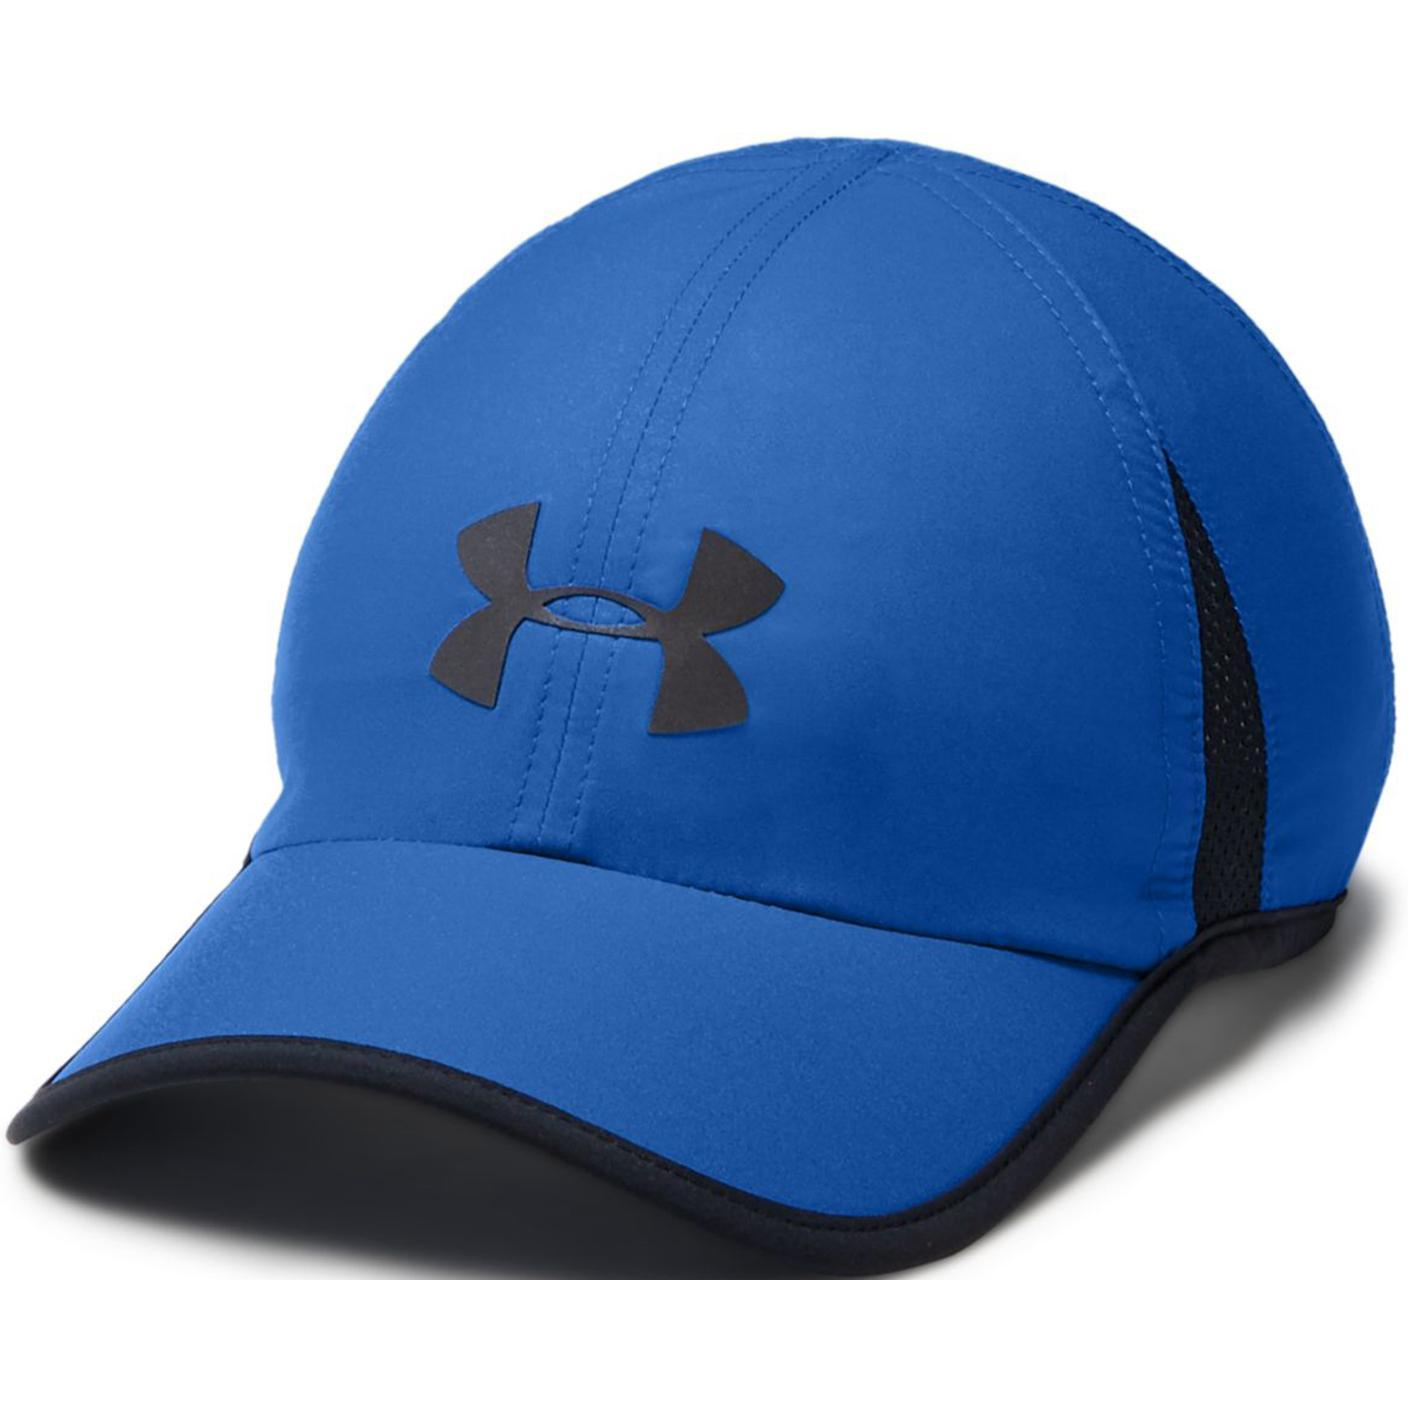 08876f2f1081 Кепка Under Armour 2019 Shadow 4.0 Run Cap Blue Strike/Black ...